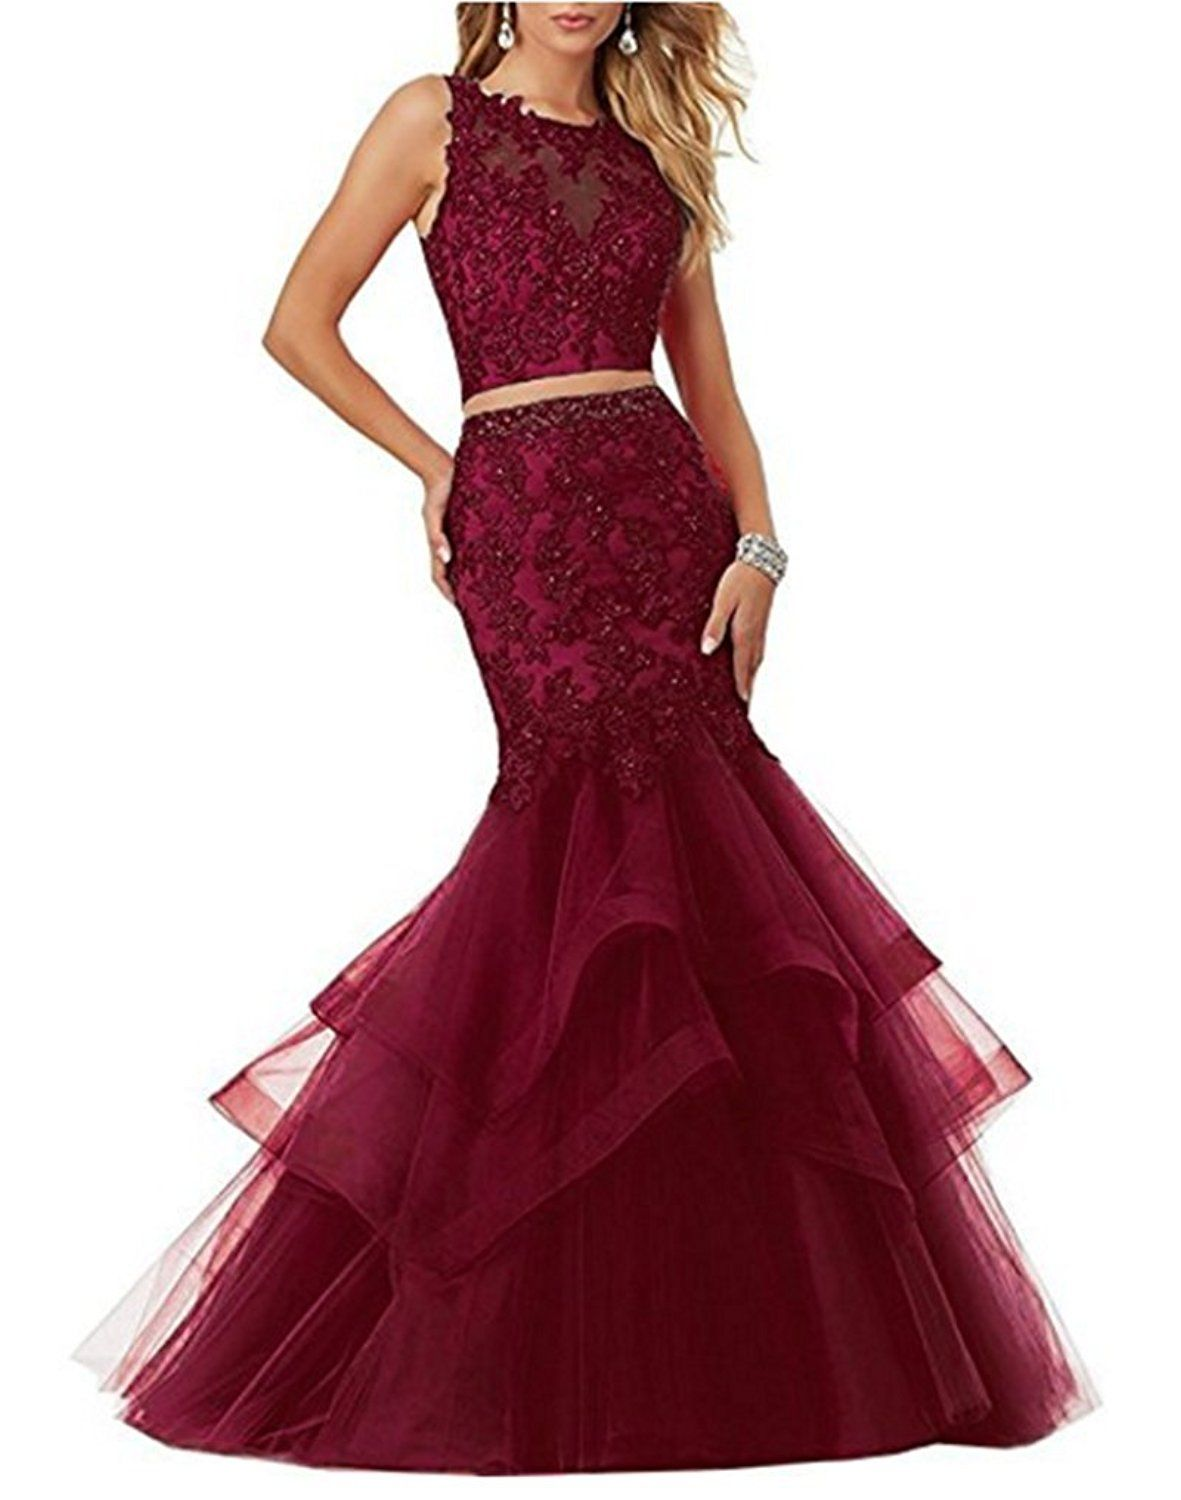 Womenus appliques piece prom dresses mermaid formal long evening